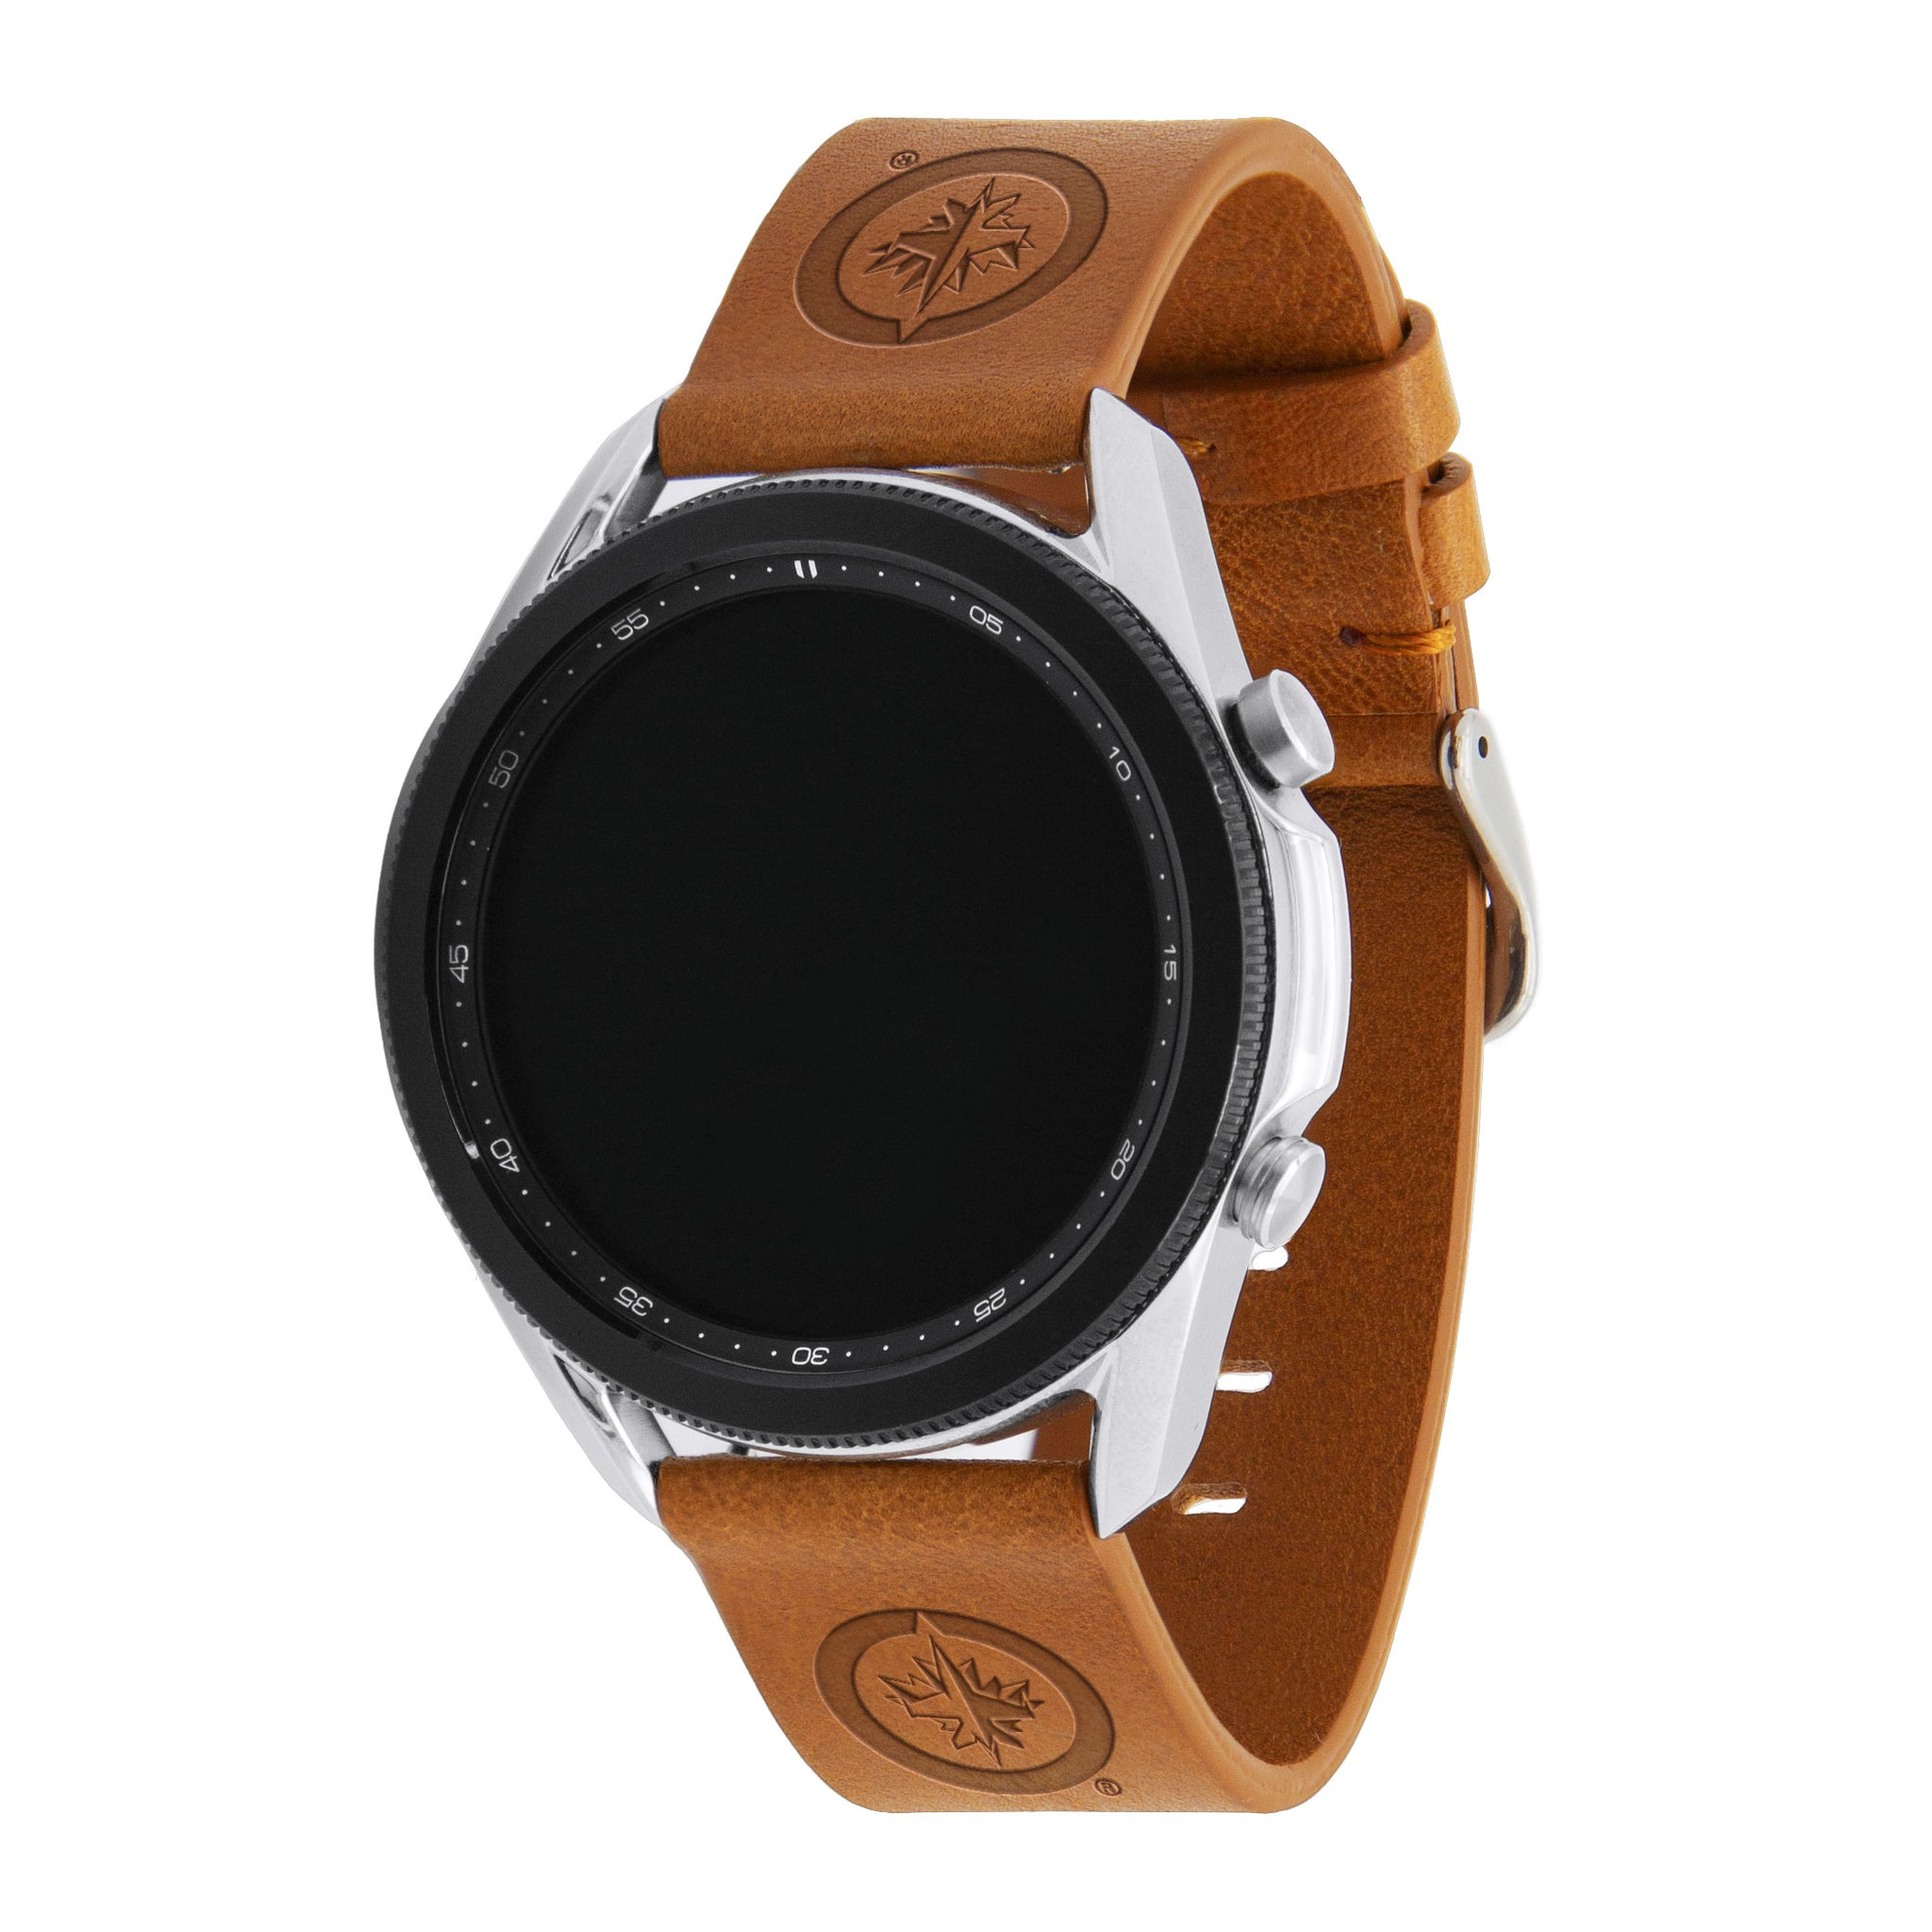 Winnipeg Jets Quick Change Leather Watch Band - AffinityBands